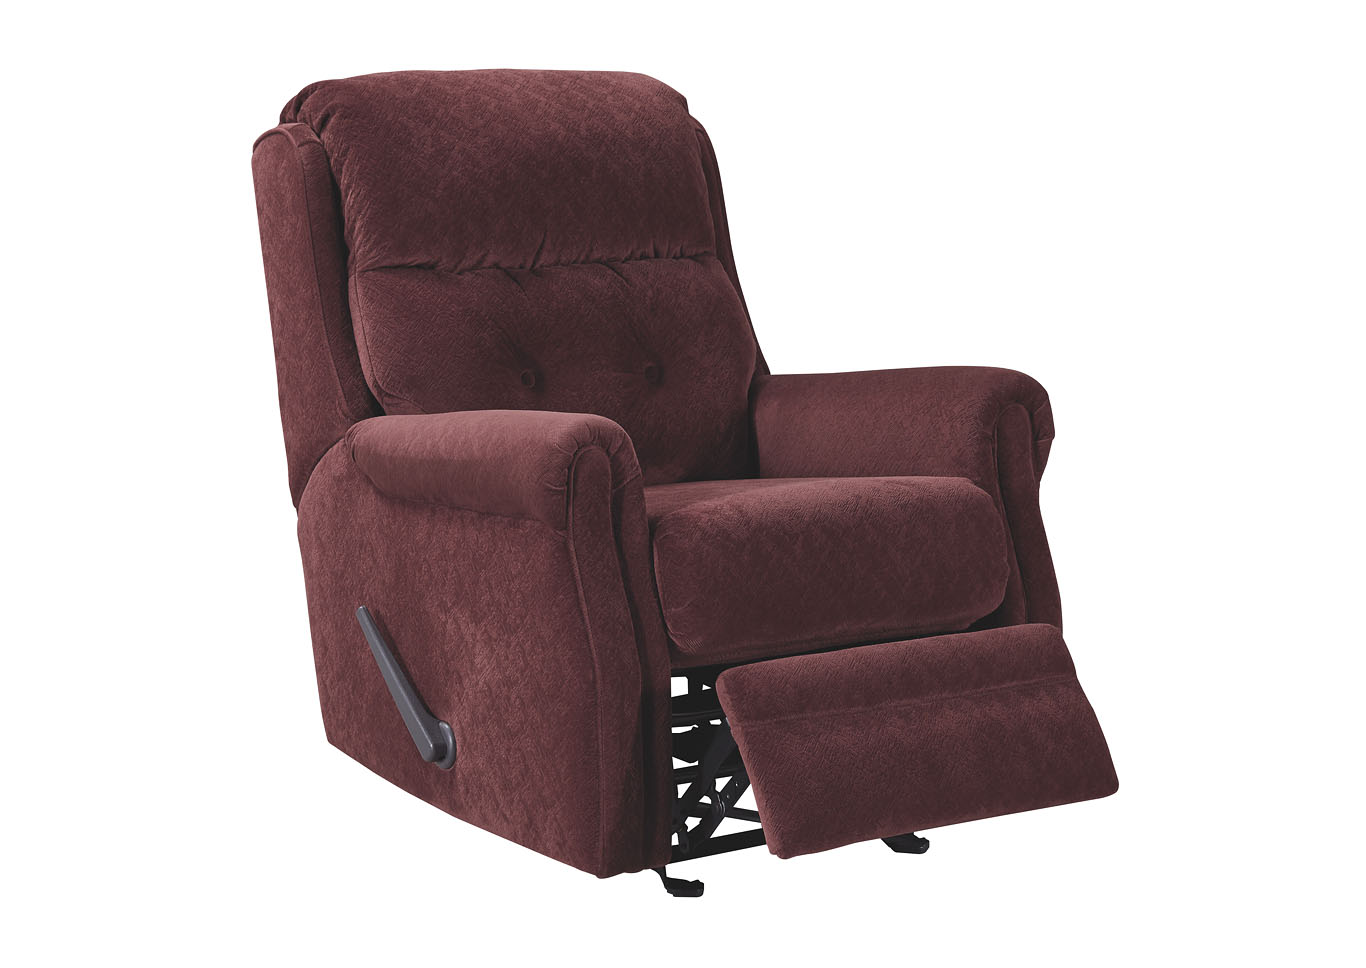 Gorham Mulberry Glider Recliner,Signature Design By Ashley